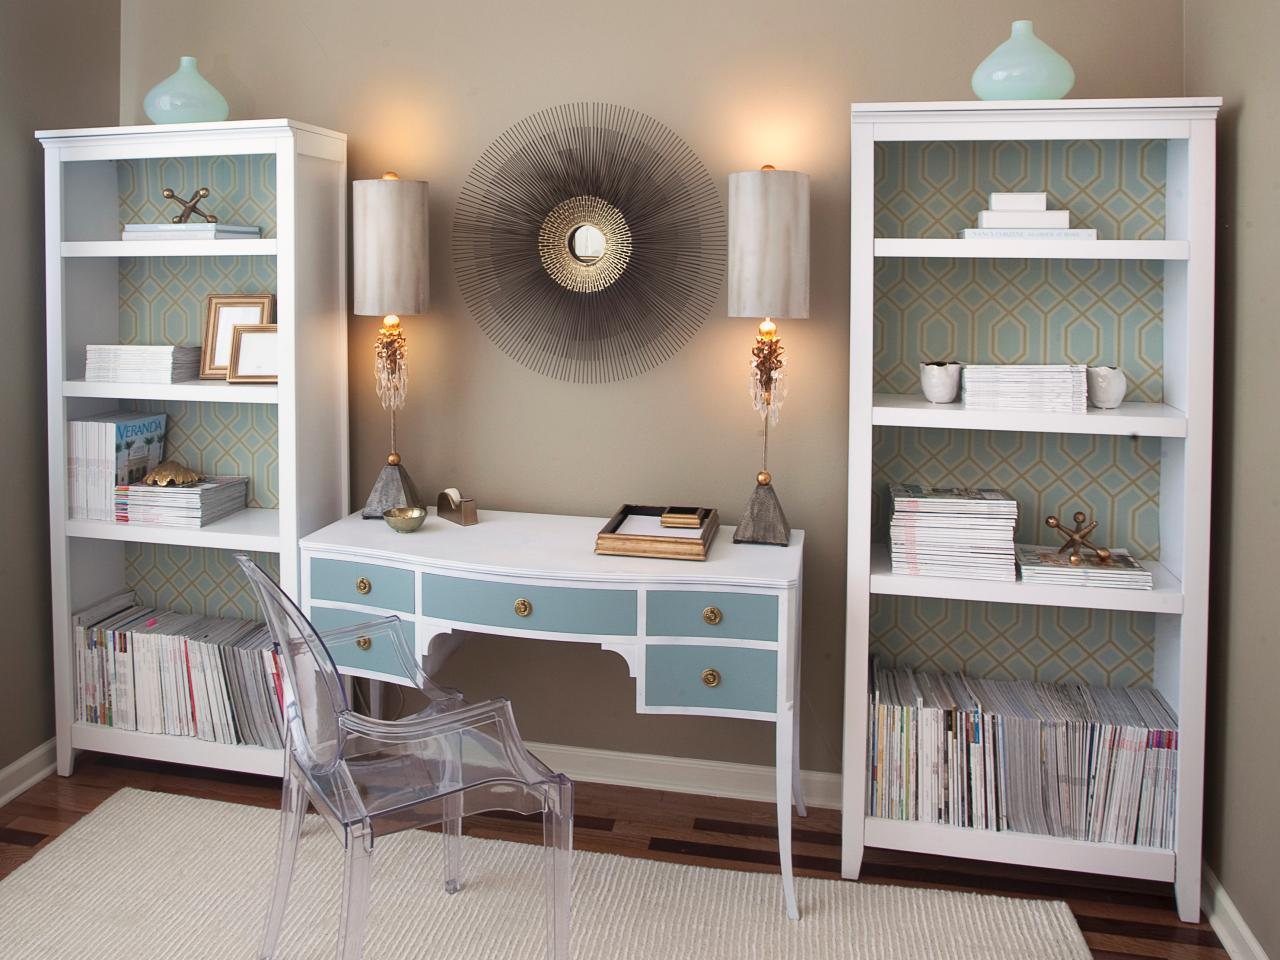 Home Office Ideas Neutral On Neutral Room Design Ideas For Creating Home Office You Love u2013 La Blog Beaut